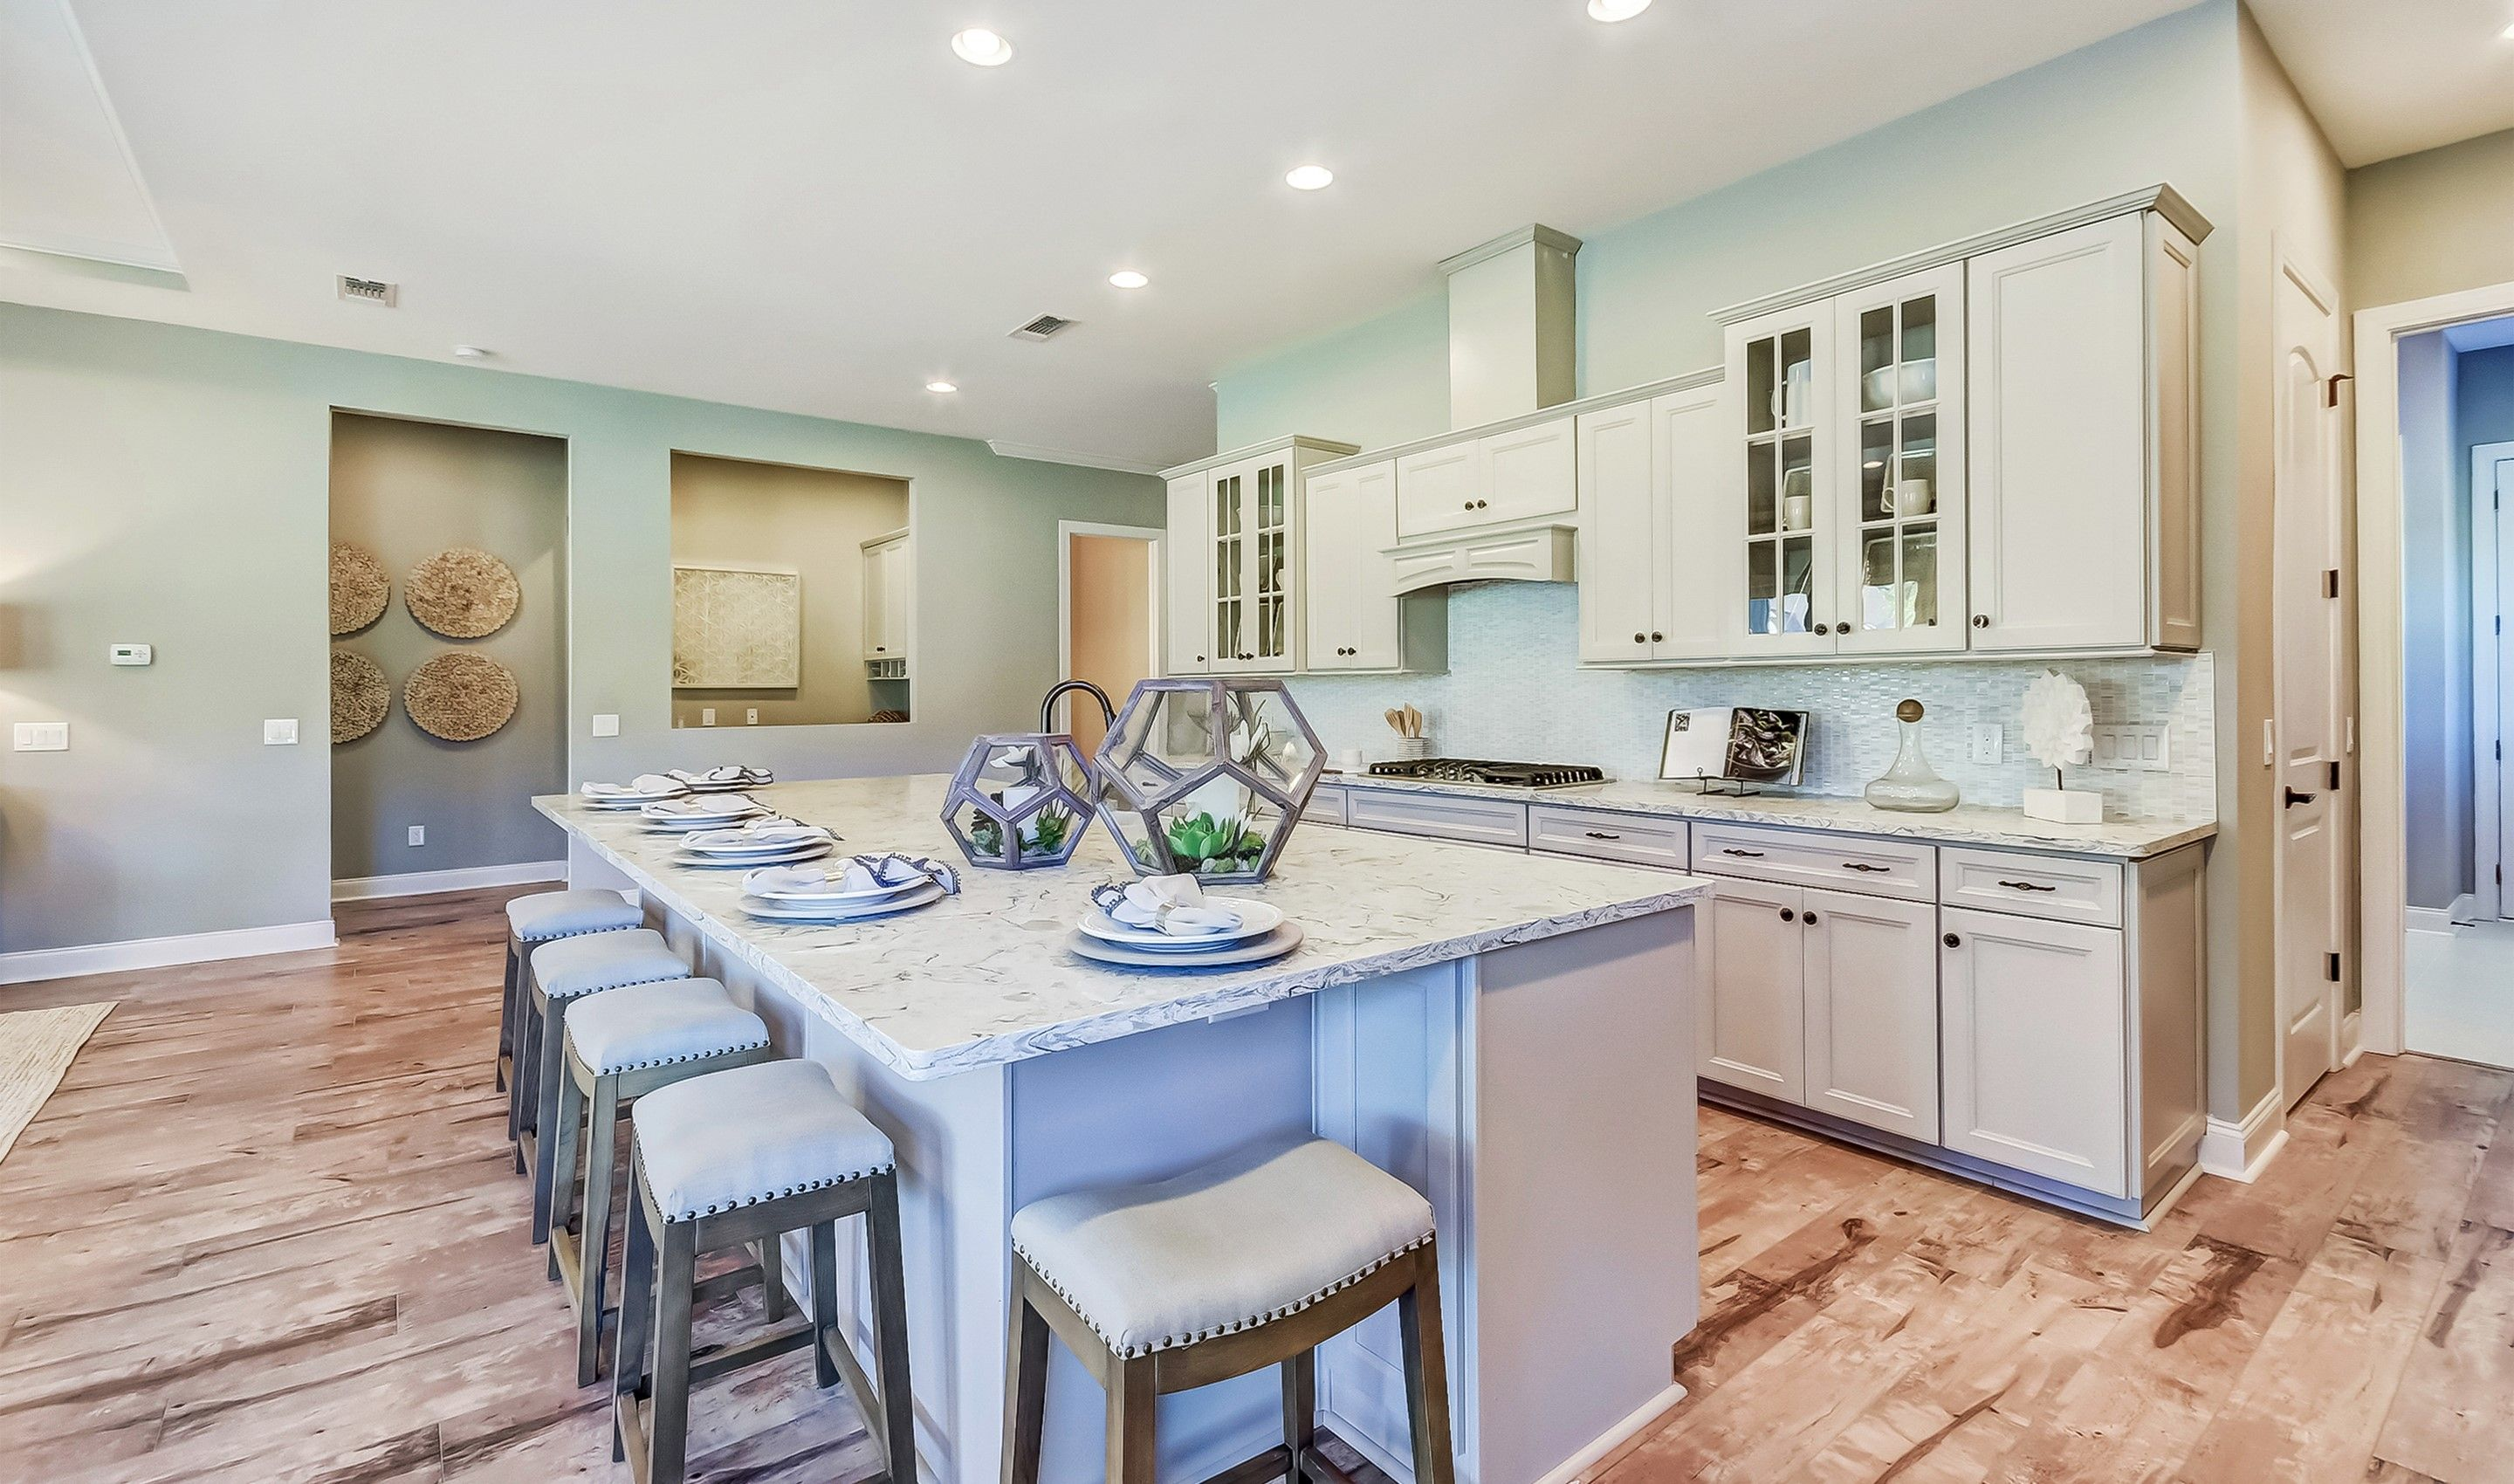 Kitchen featured in the Mont Blanc By K. Hovnanian's® Four Seasons in Hilton Head, SC